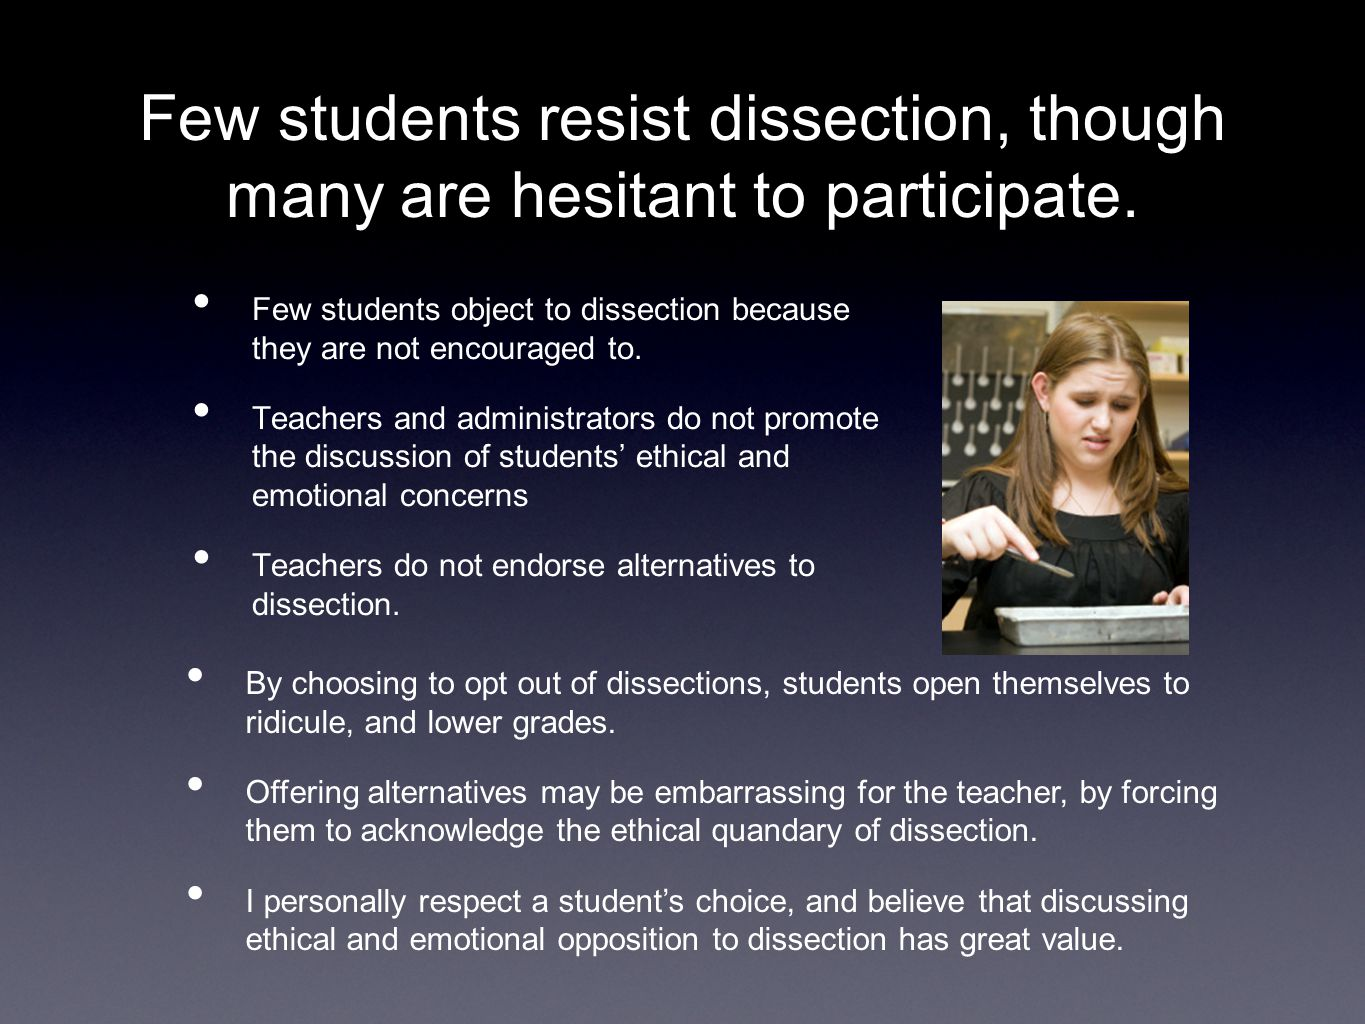 Few students resist dissection, though many are hesitant to participate.